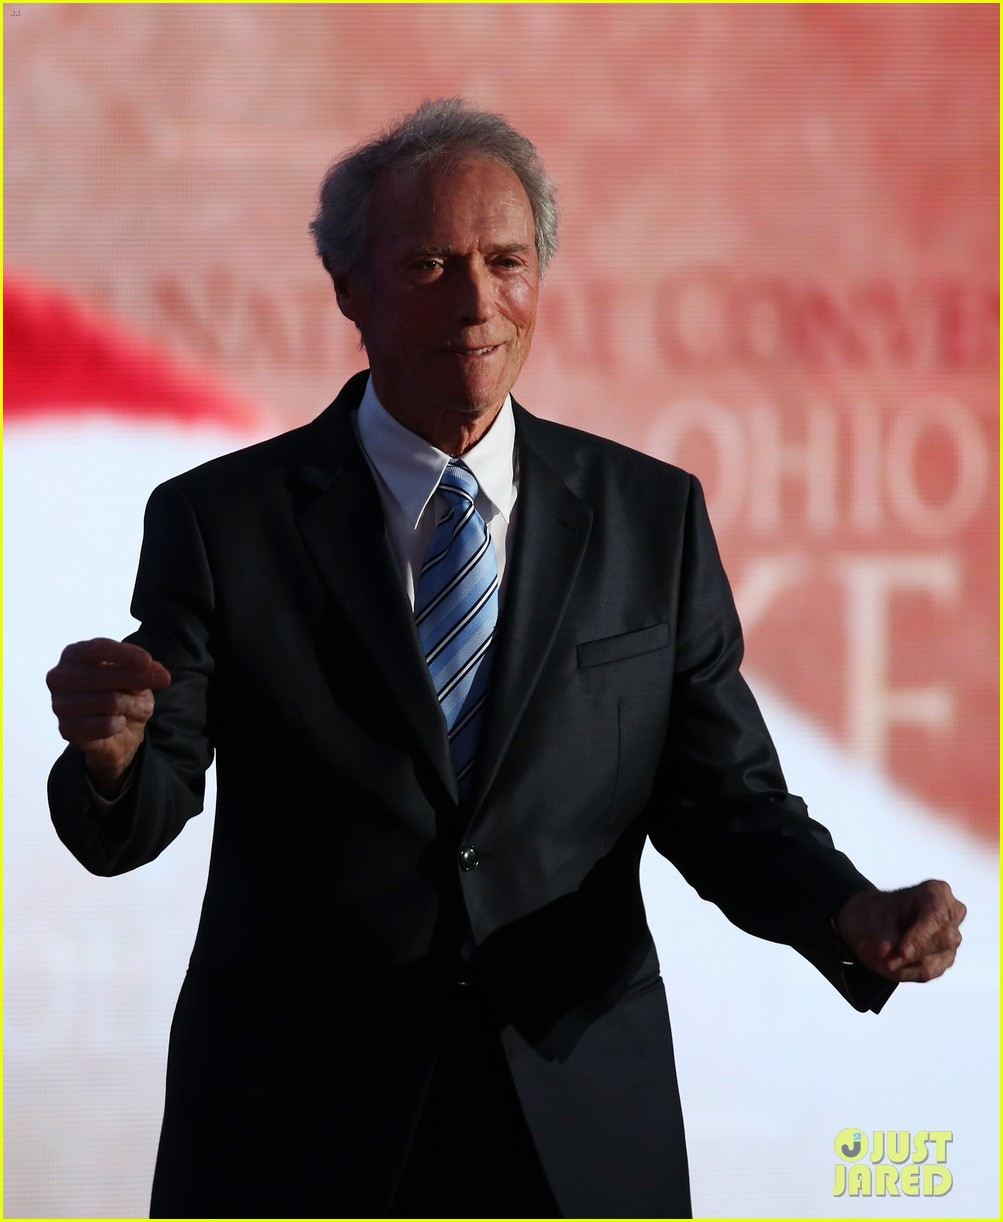 clint eastwood speech at republican national convention watch now 03